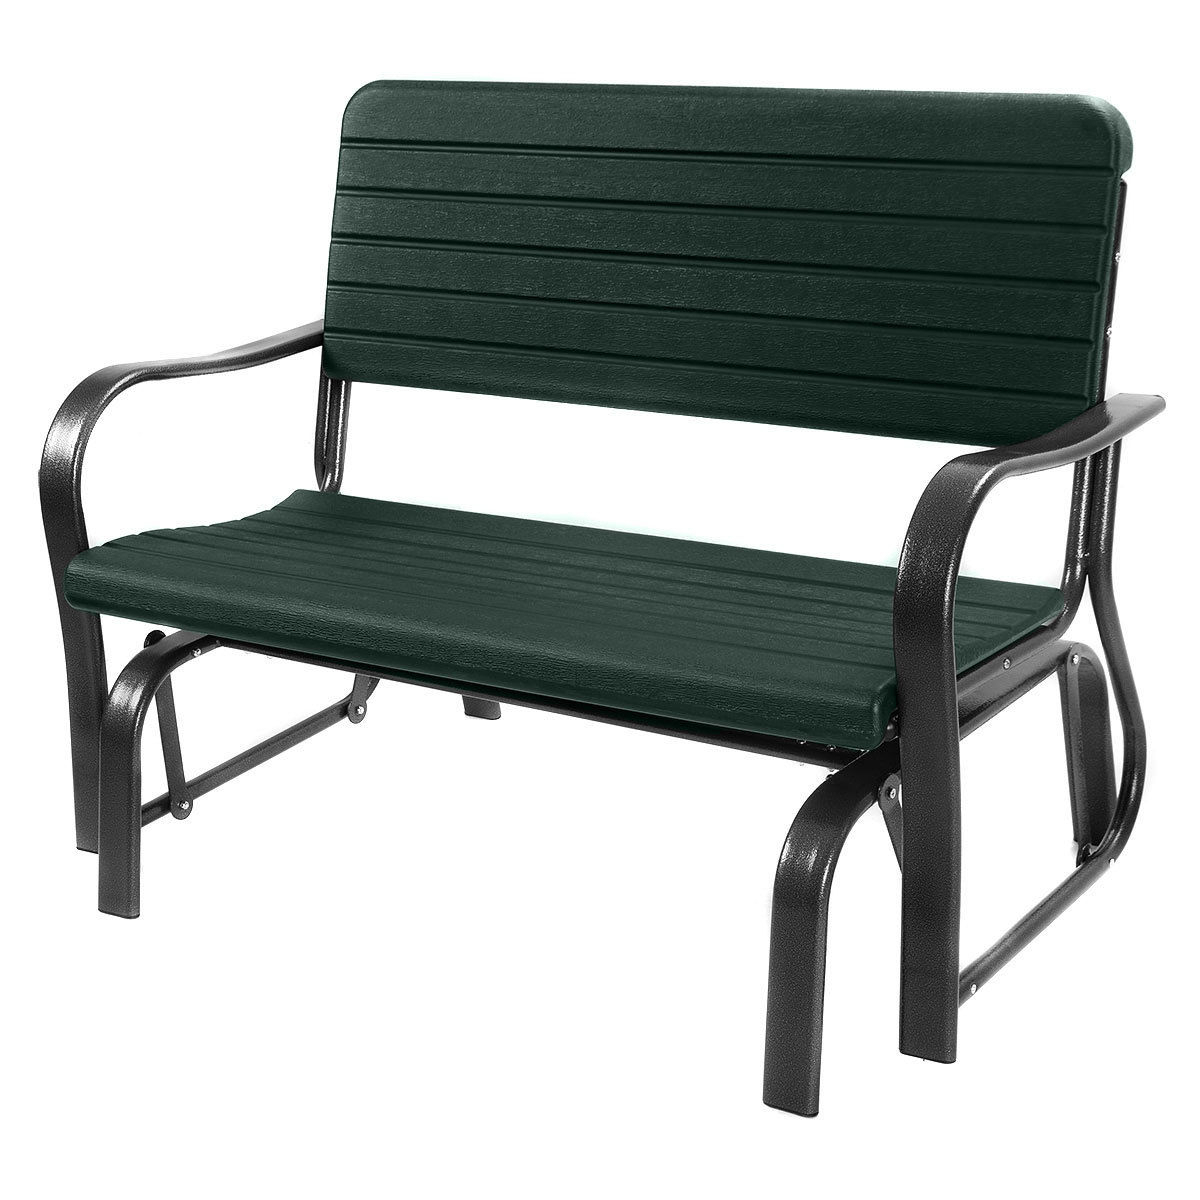 Swing Chair Outdoor Patio Swing Porch Rocker Glider Bench With 2 Person Loveseat Chair Patio Porch Swings With Rocker (View 10 of 25)